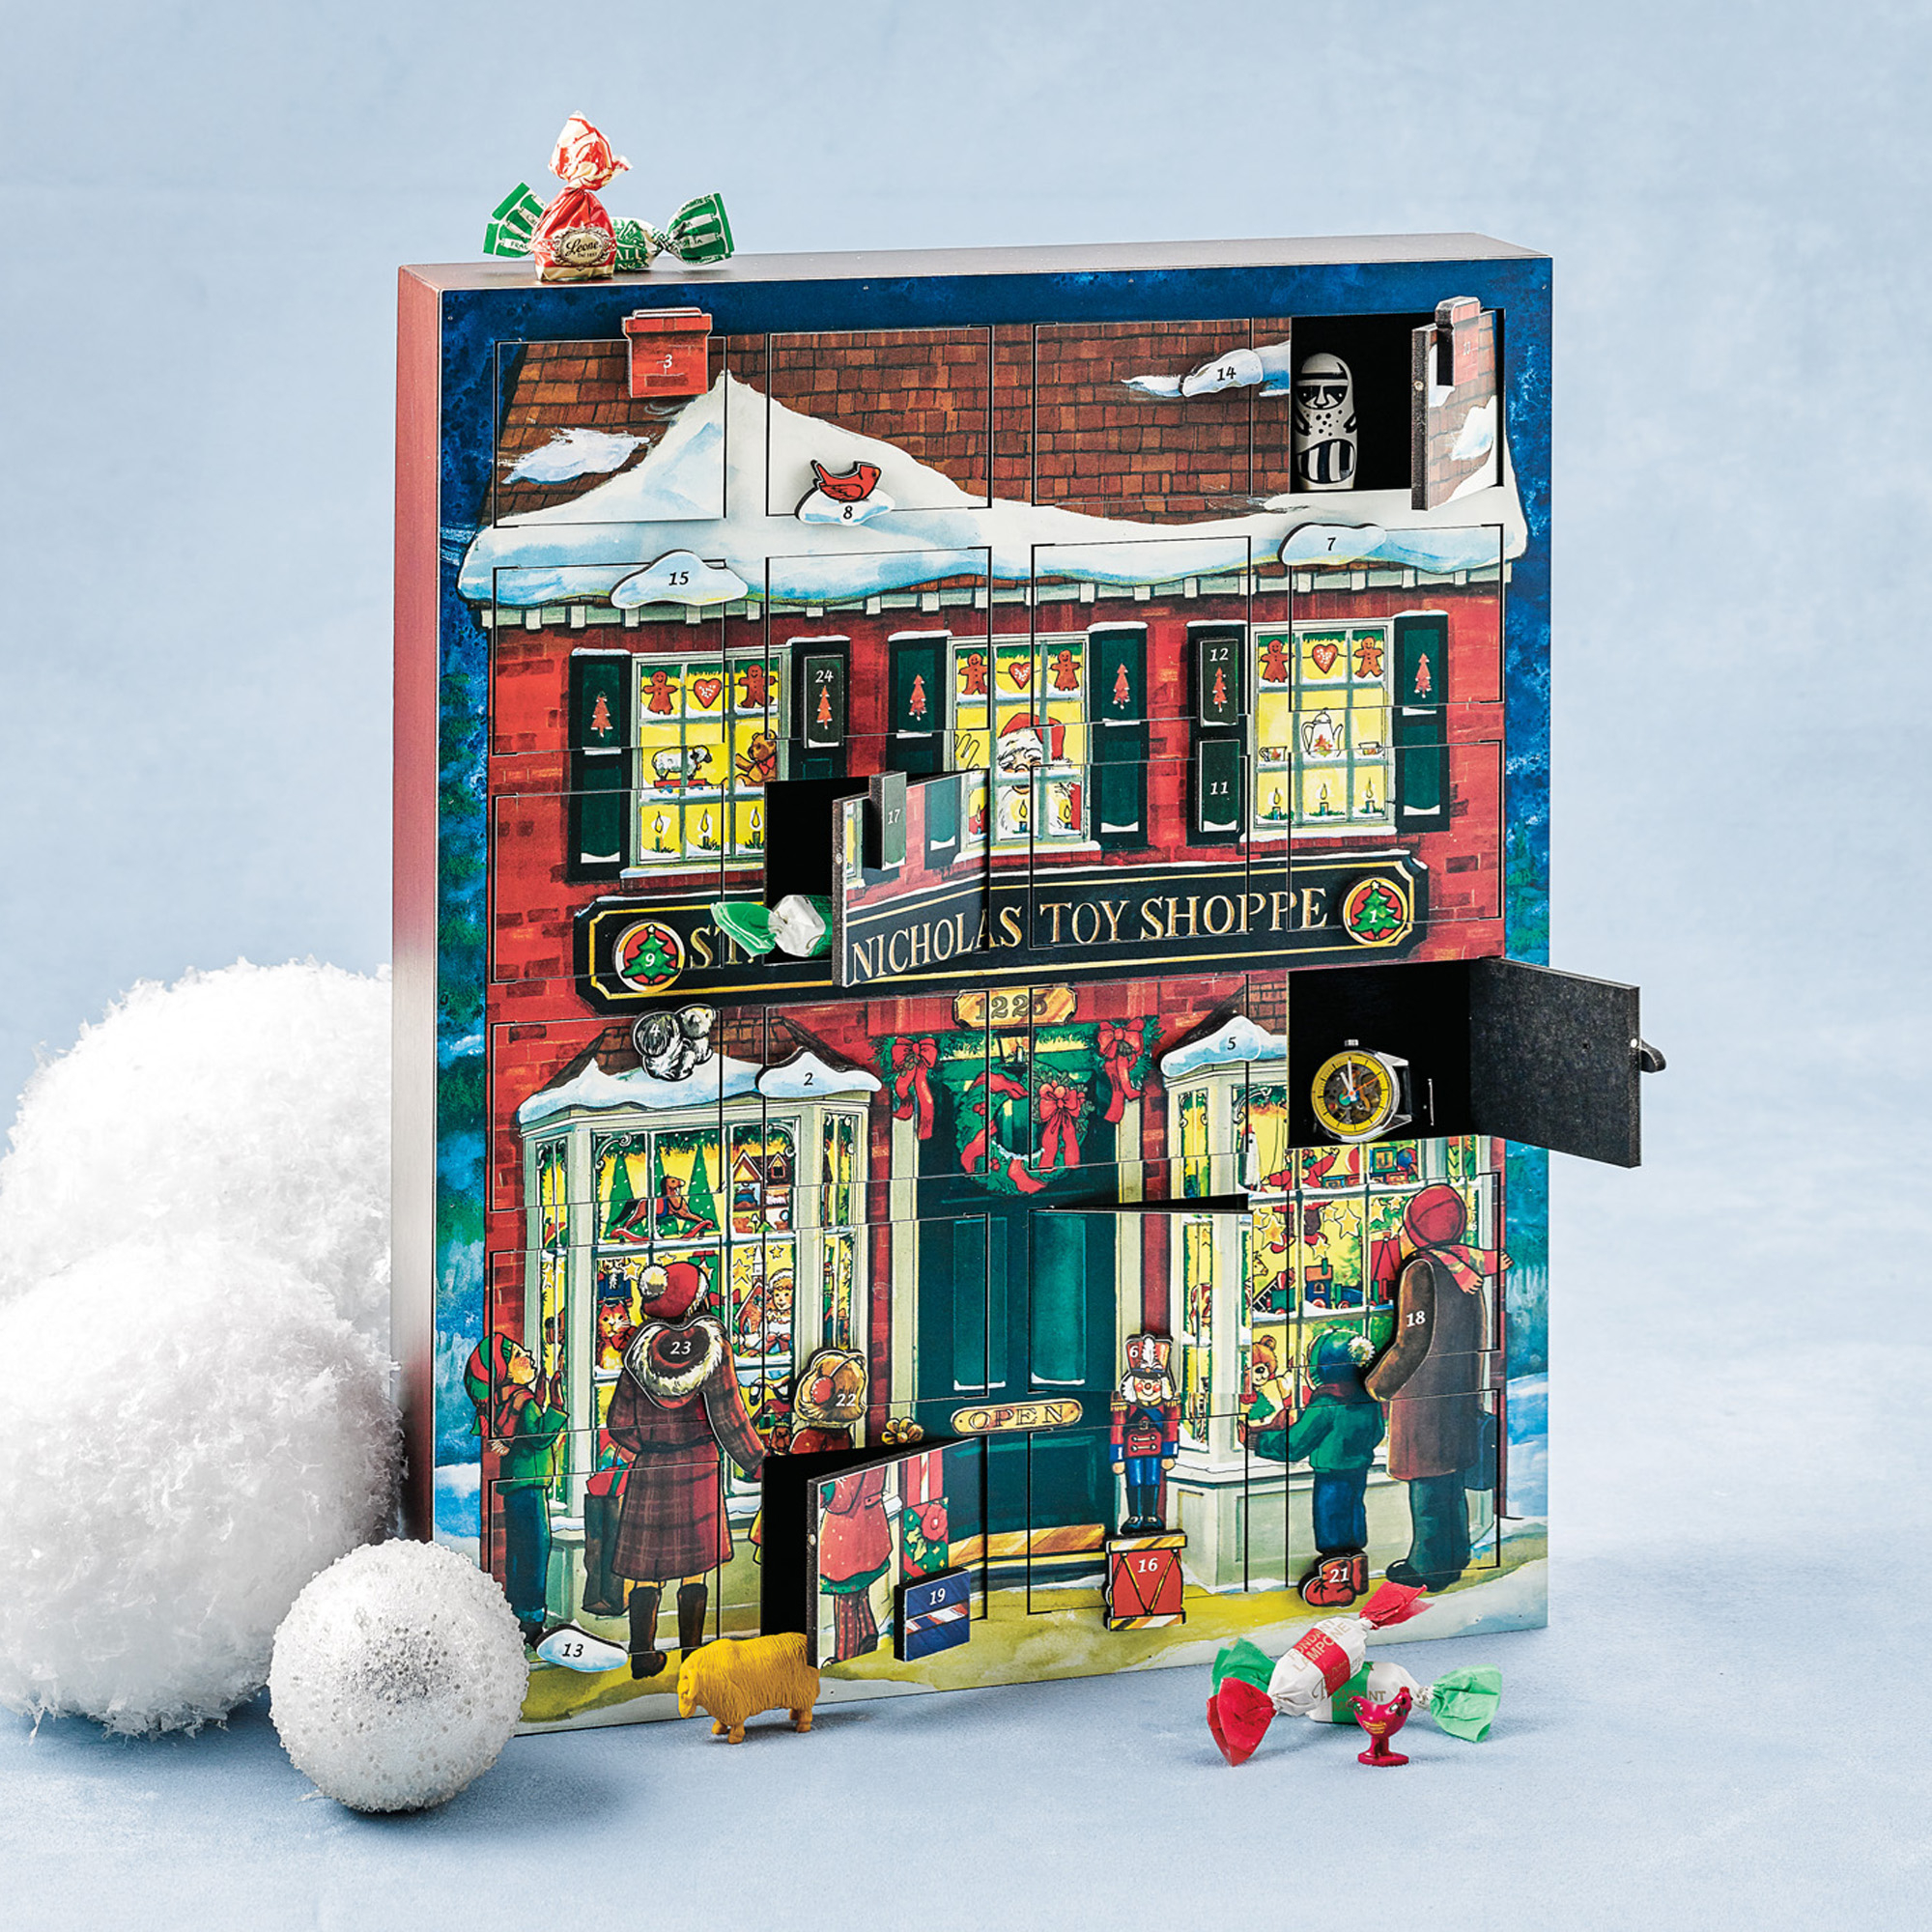 St. Nicholas Toy Shoppe Advent Calendar